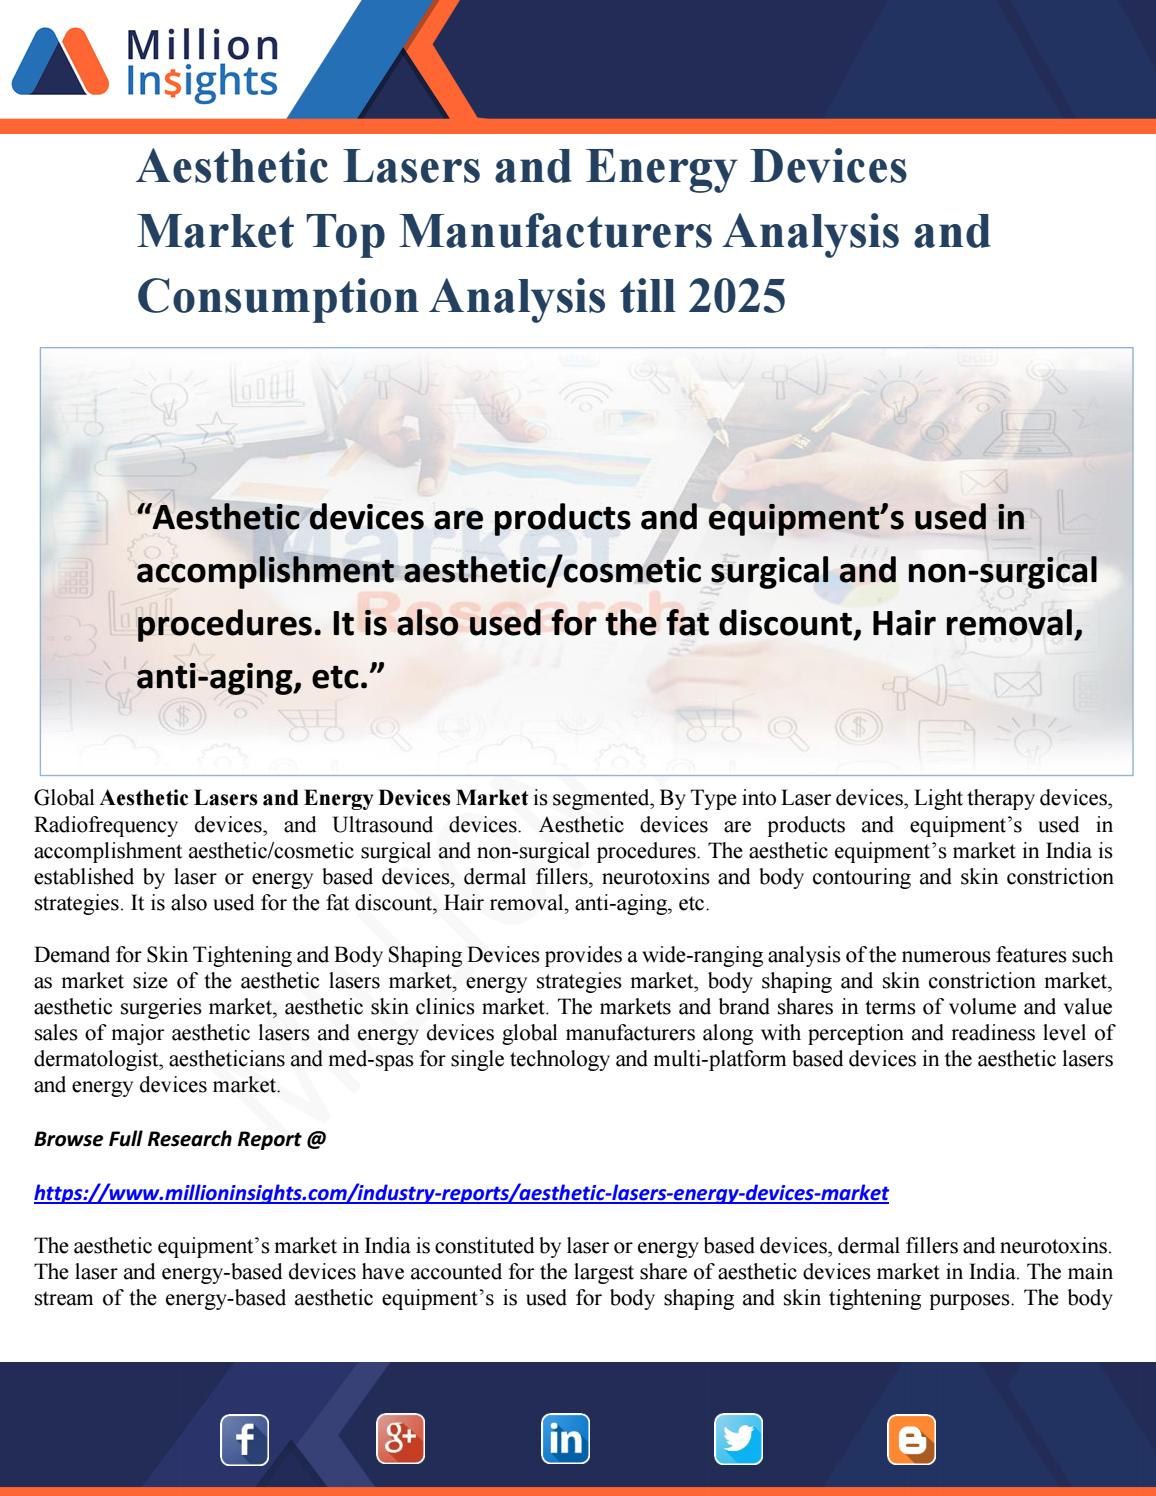 Aesthetic Lasers and Energy Devices Market Top Manufacturers